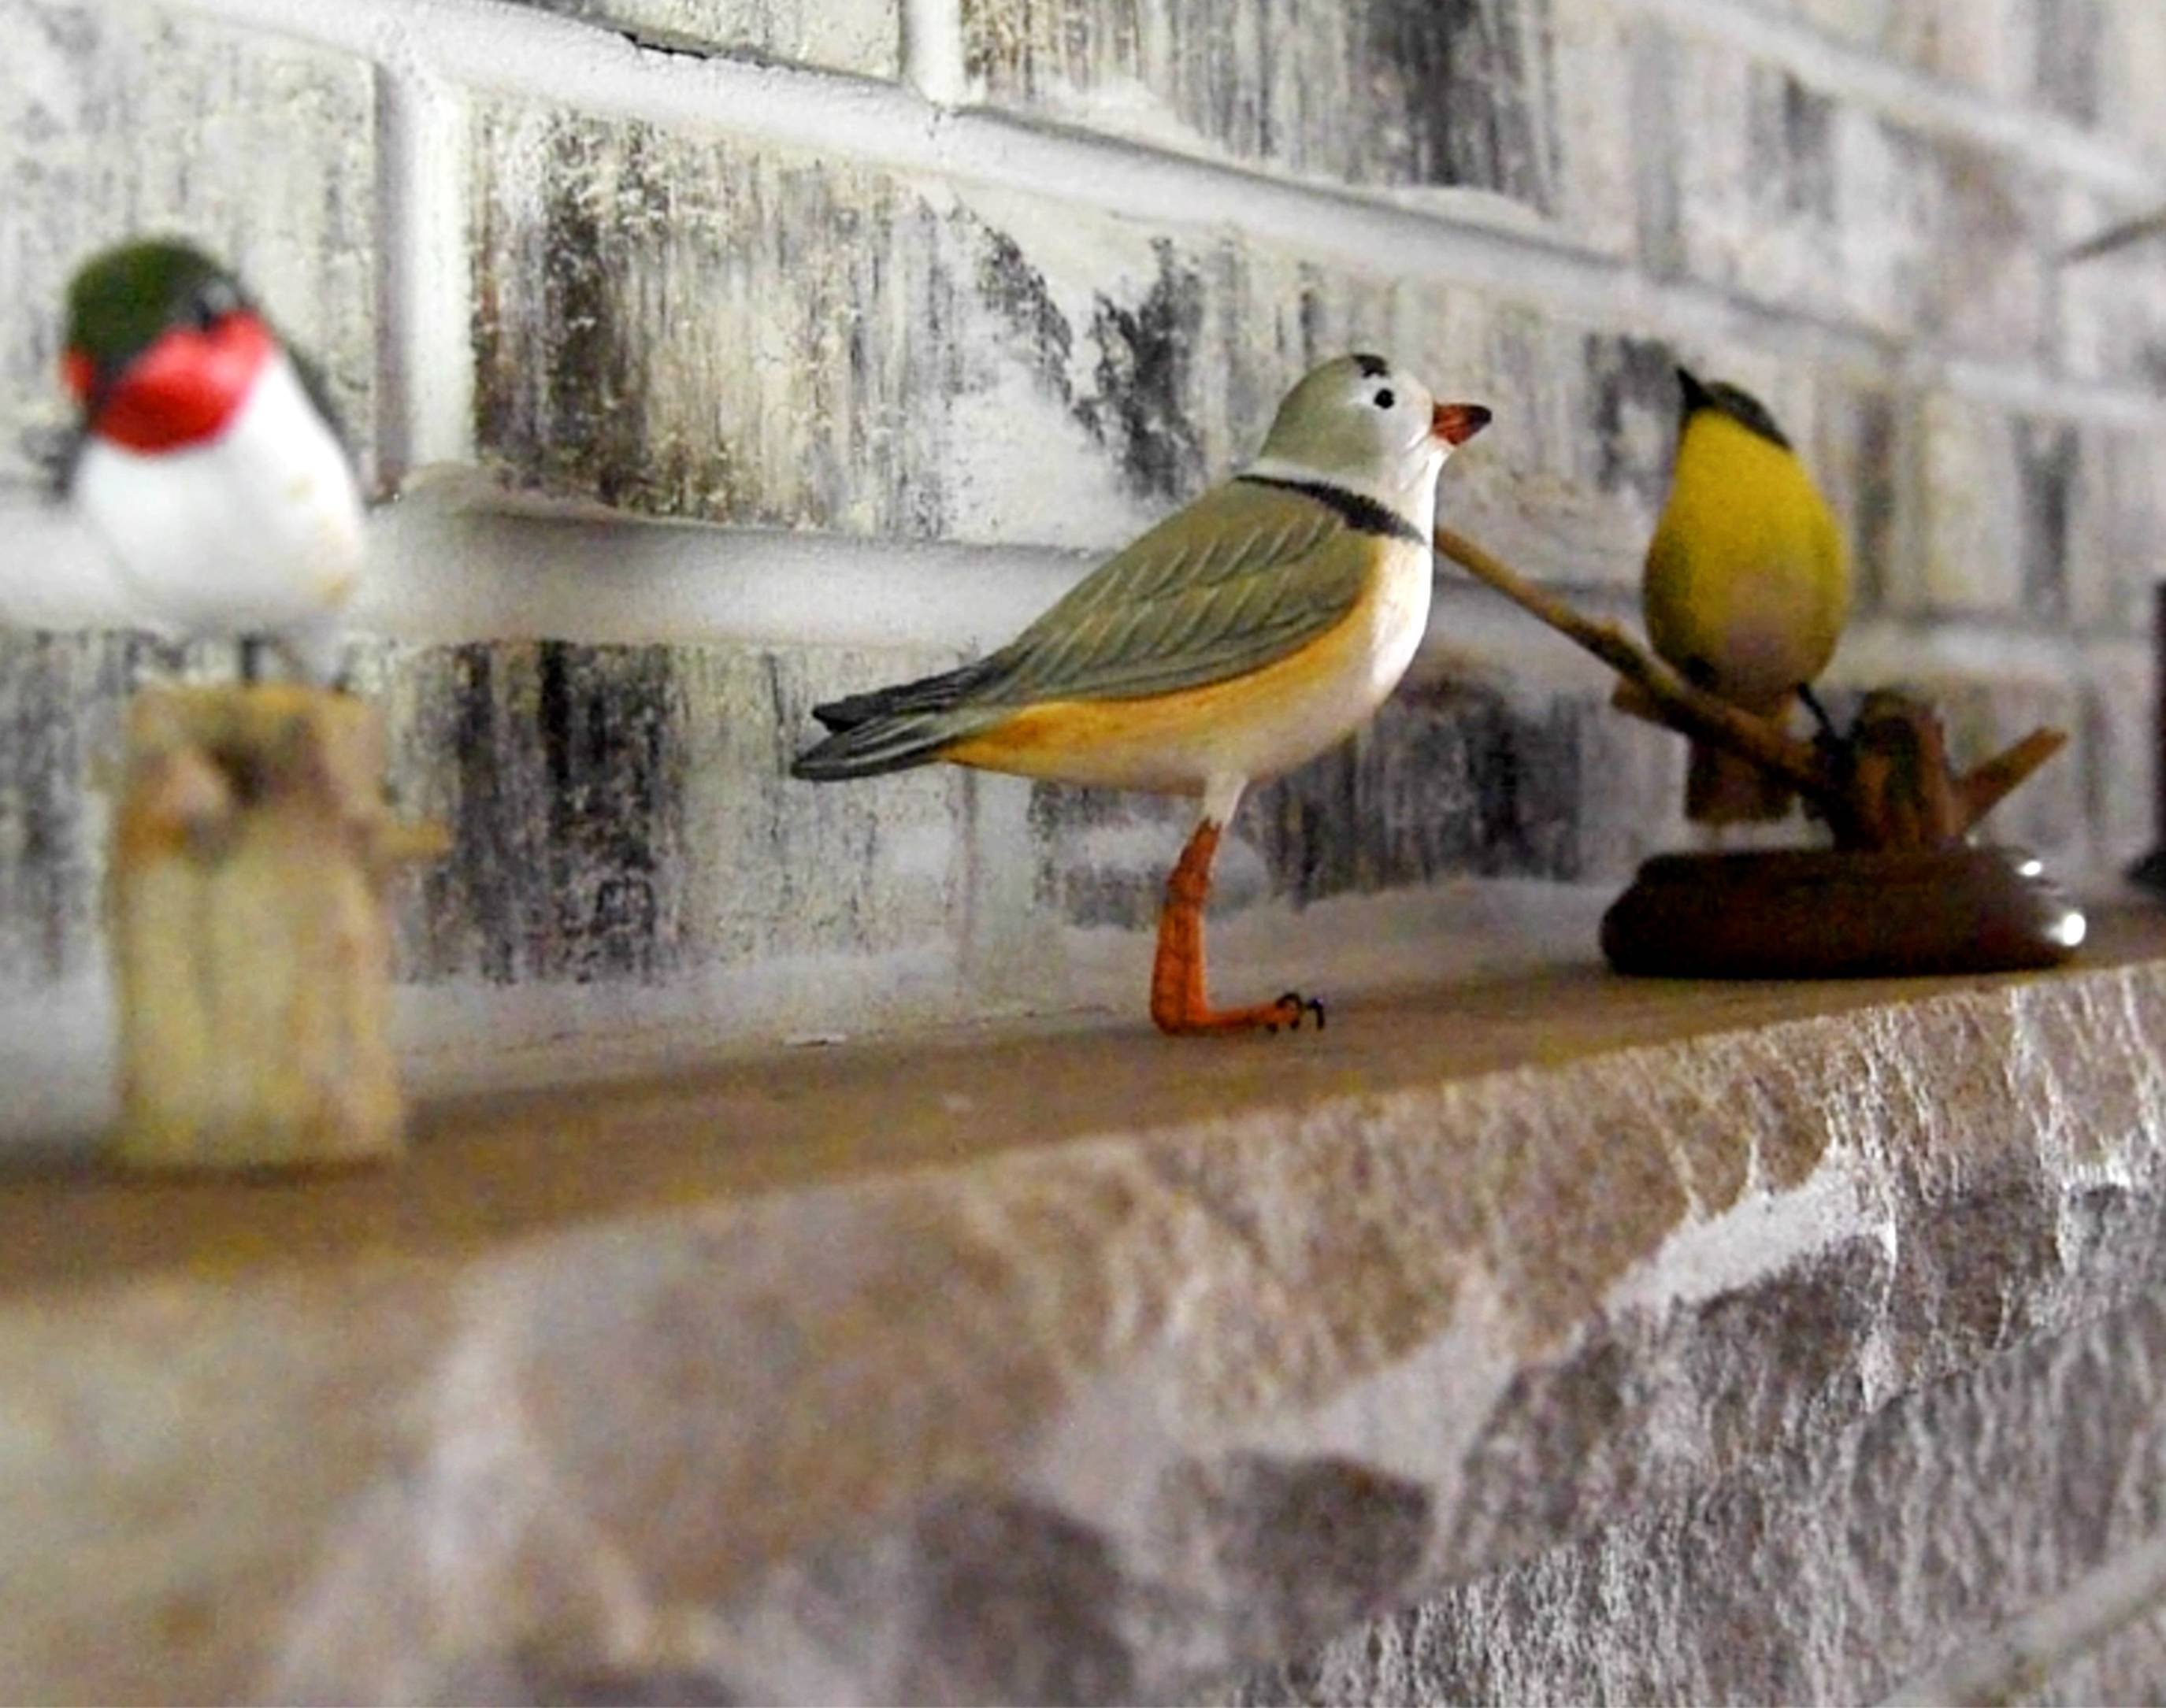 The East Dundee home of Bob Montgomery features a collection of wood carvings depicting small birds and larger waterfowl. His backyard is home to at least 20 species of live birds.